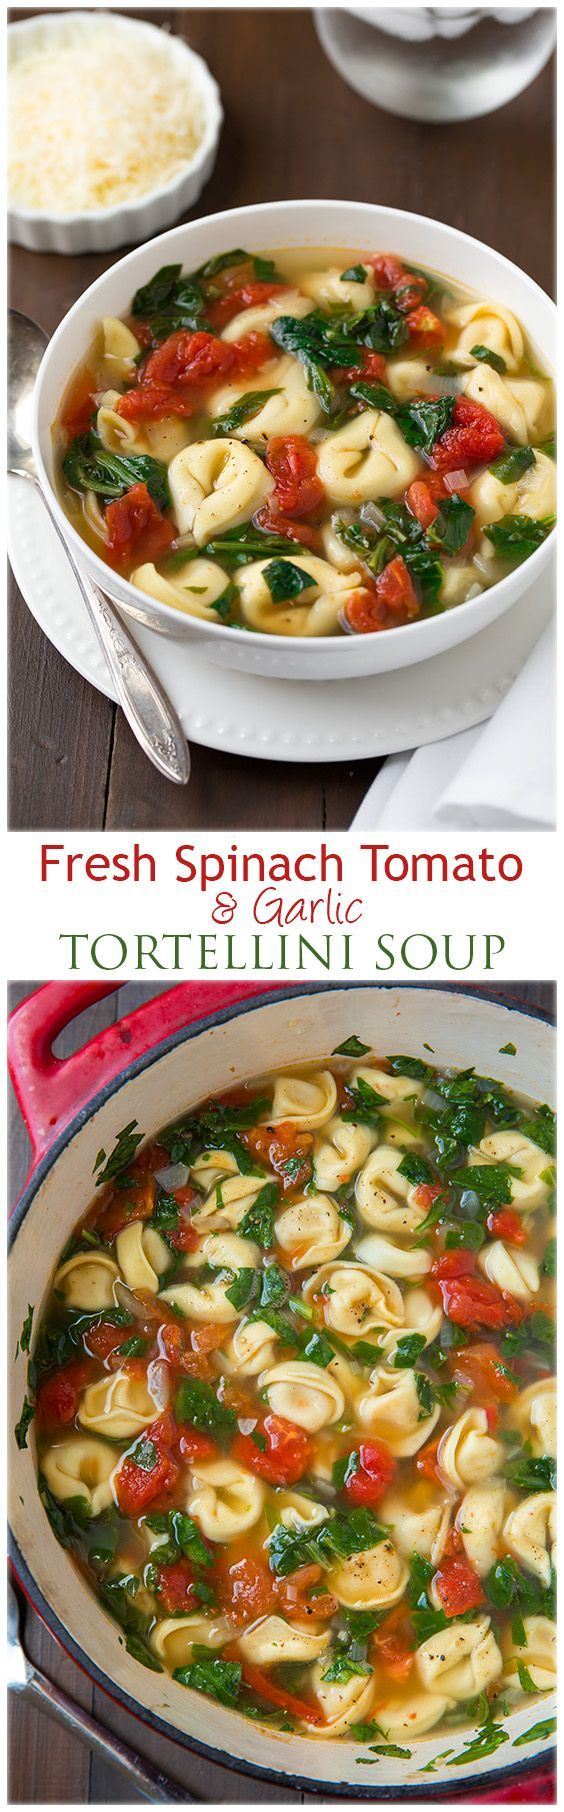 Fresh Spinach Tomato and Garlic Tortellini Soup - this soup looks ...